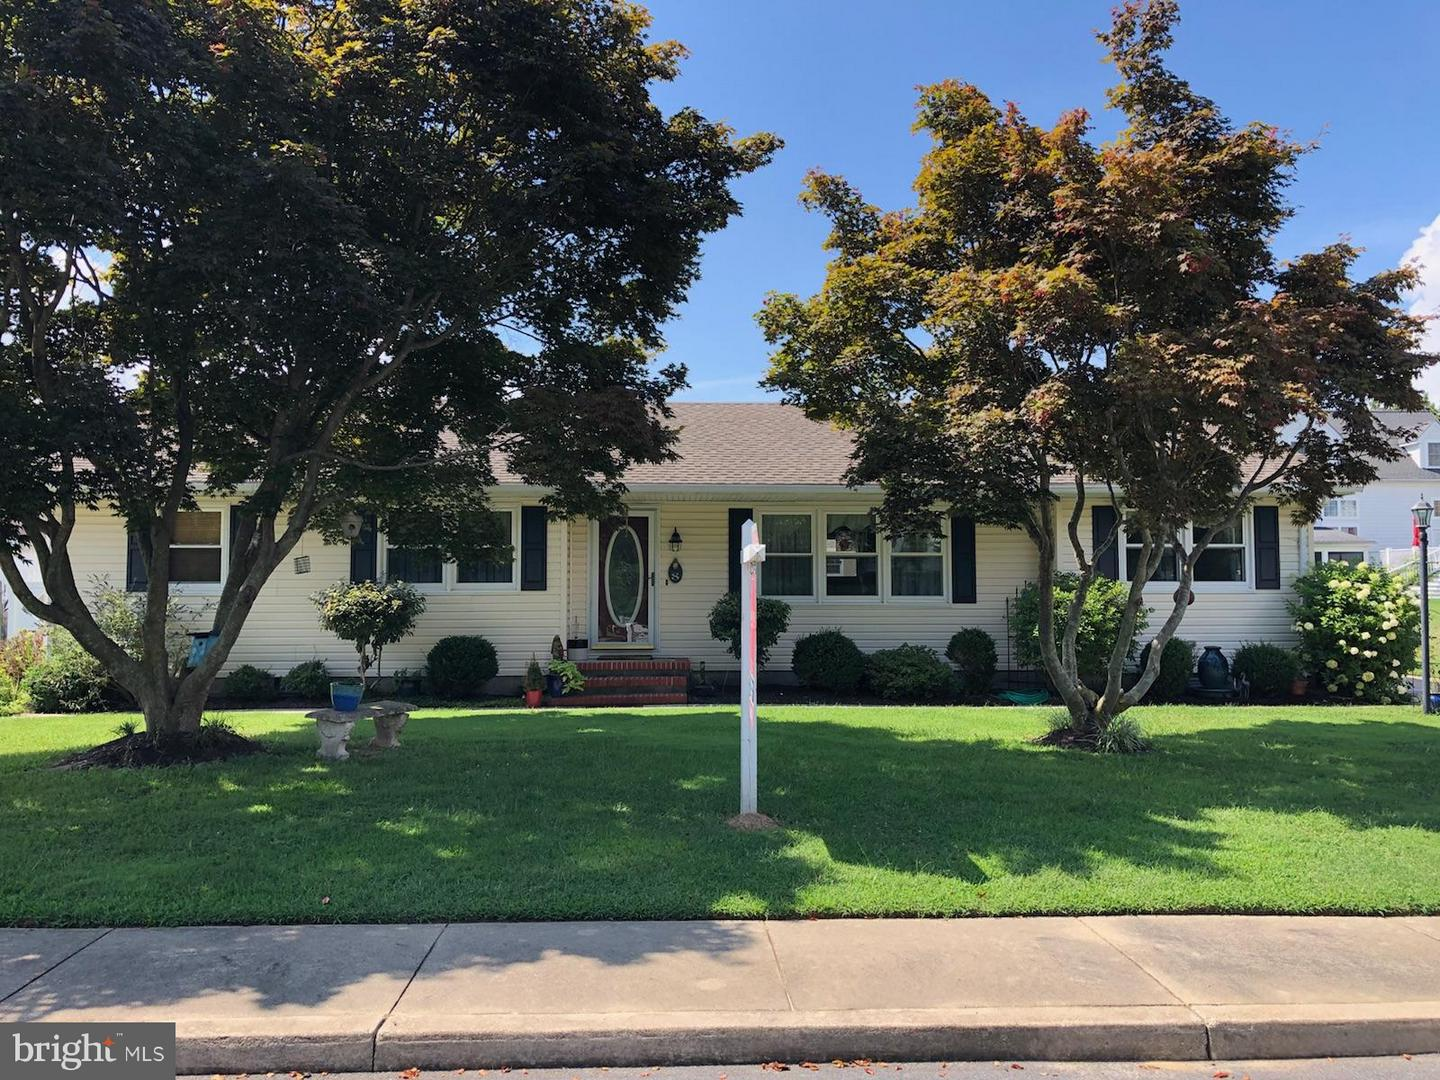 Single Family for Sale at 8 Harris Dr Cambridge, Maryland 21613 United States